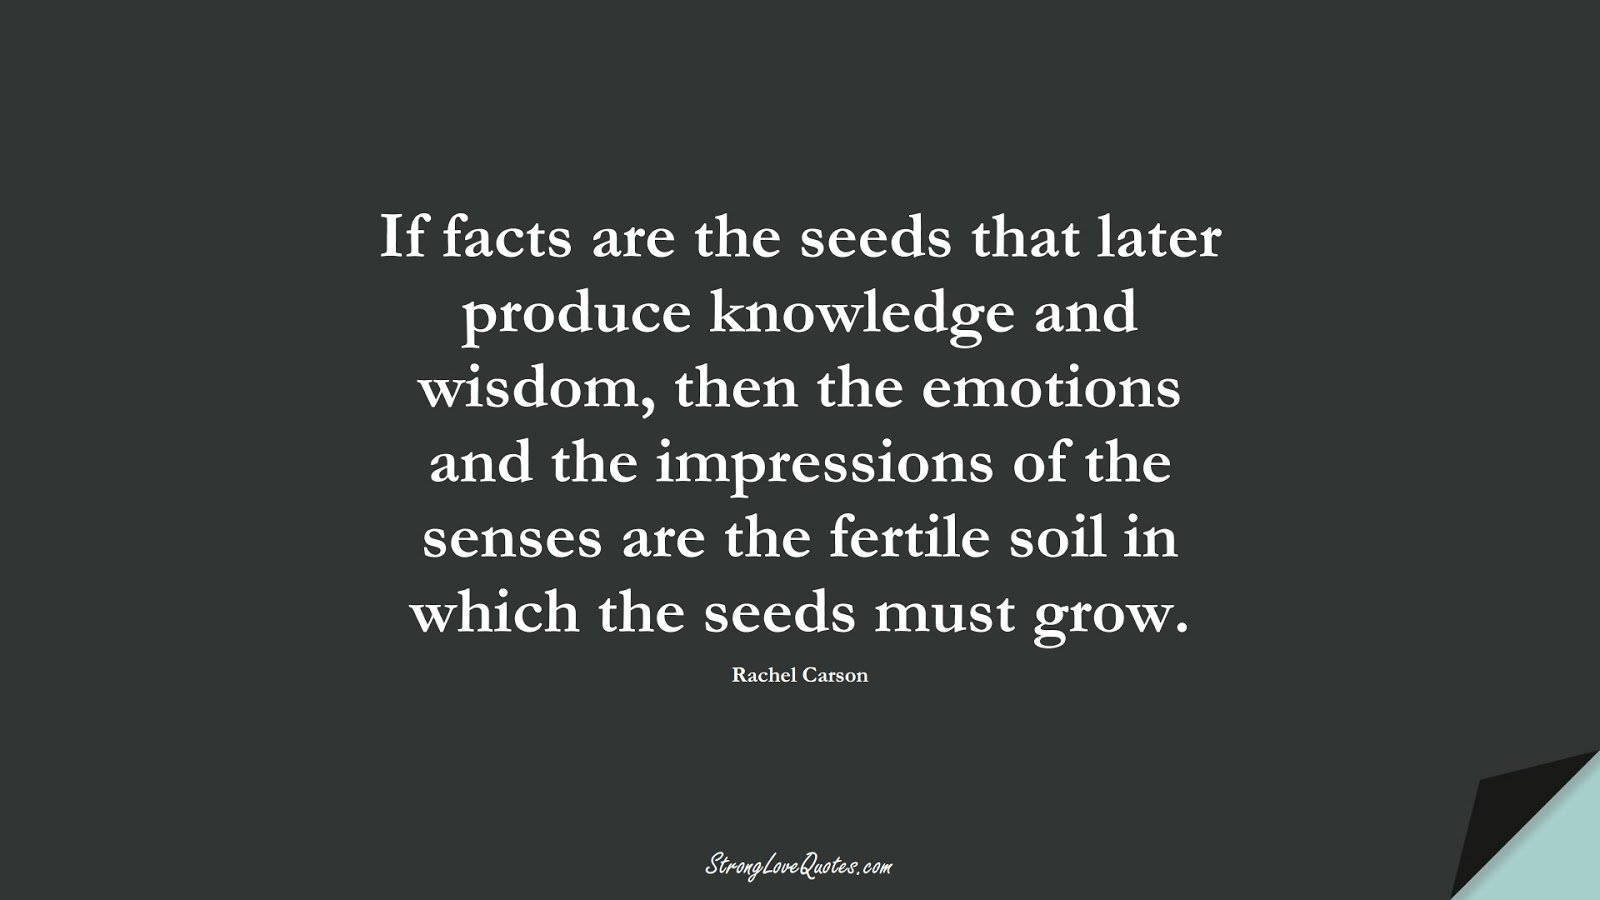 If facts are the seeds that later produce knowledge and wisdom, then the emotions and the impressions of the senses are the fertile soil in which the seeds must grow. (Rachel Carson);  #KnowledgeQuotes